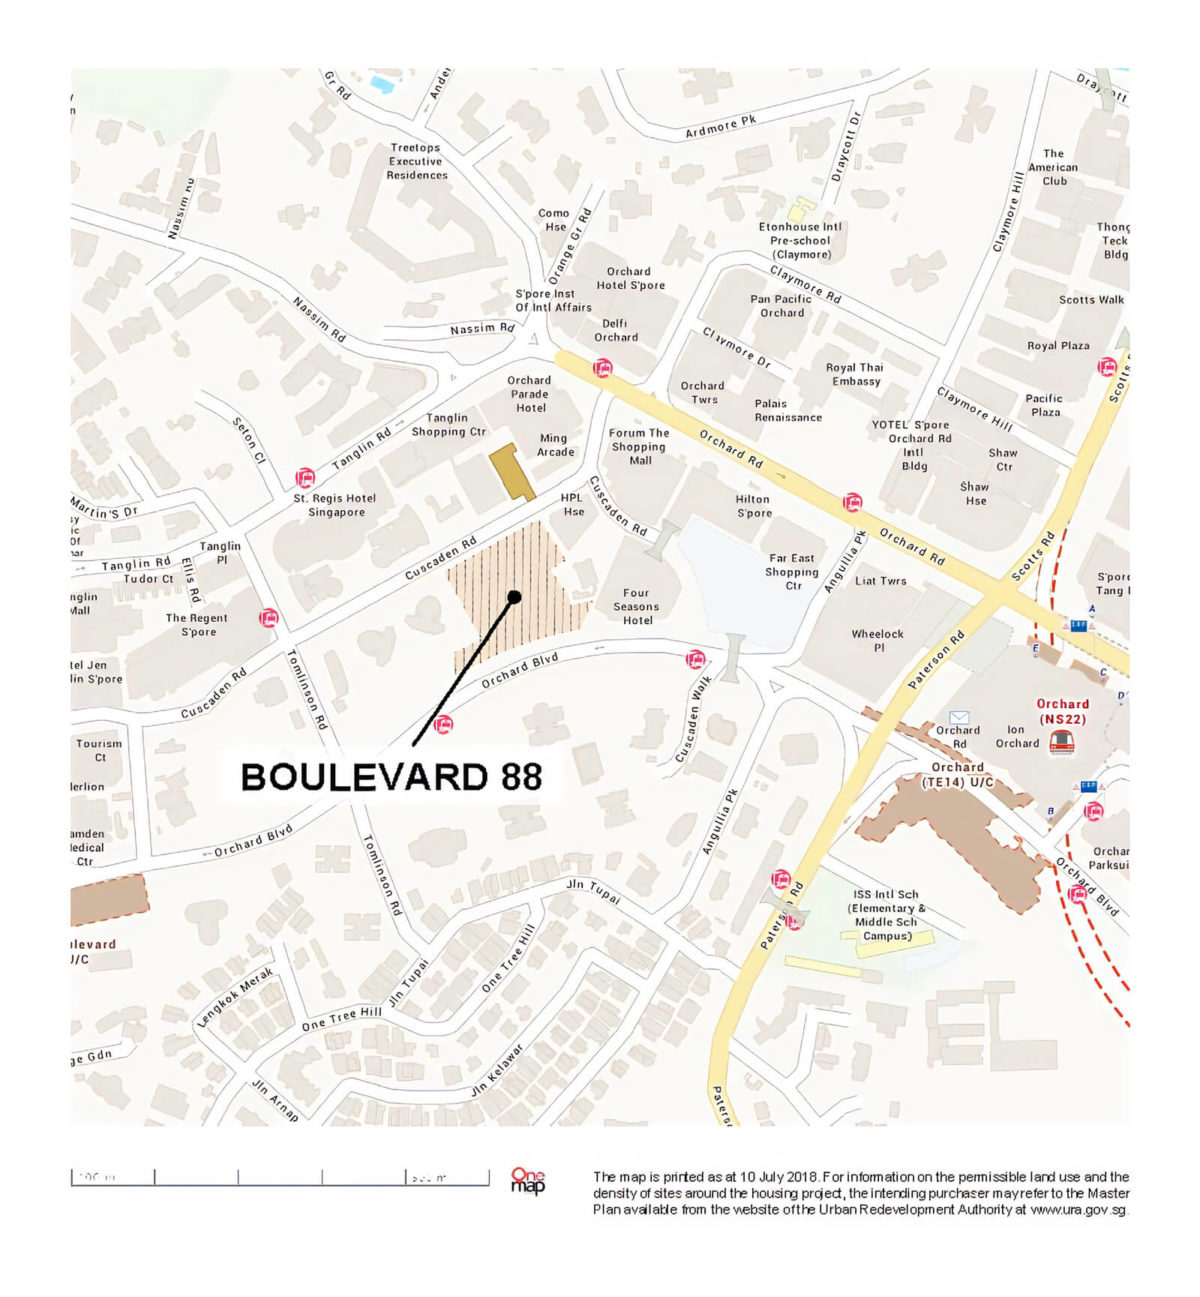 Boulevard 88 Location Map